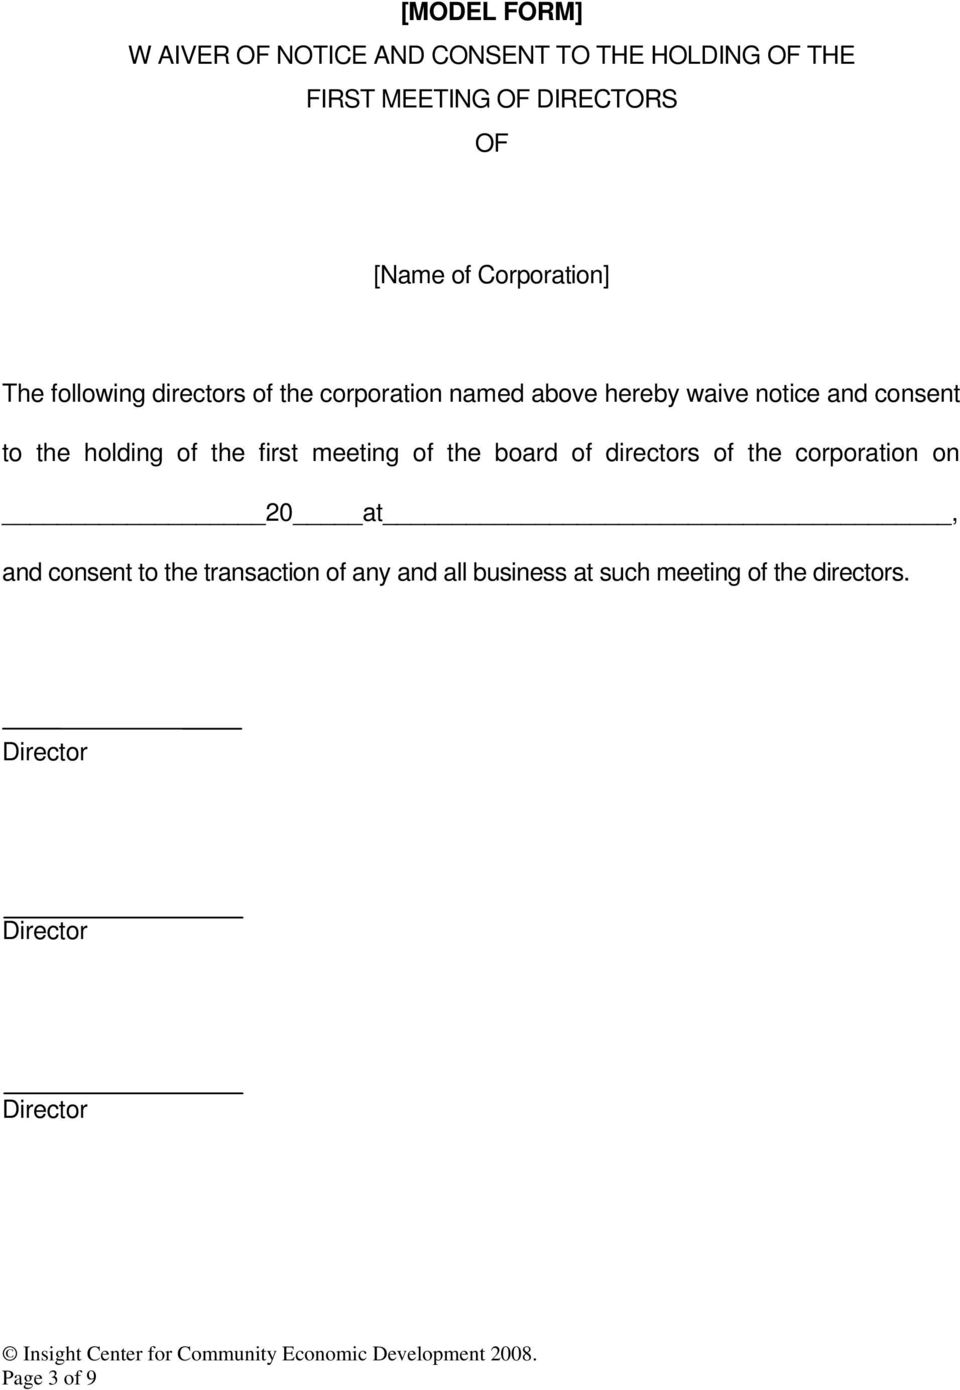 the holding of the first meeting of the board of directors of the corporation on 20 at, and consent to